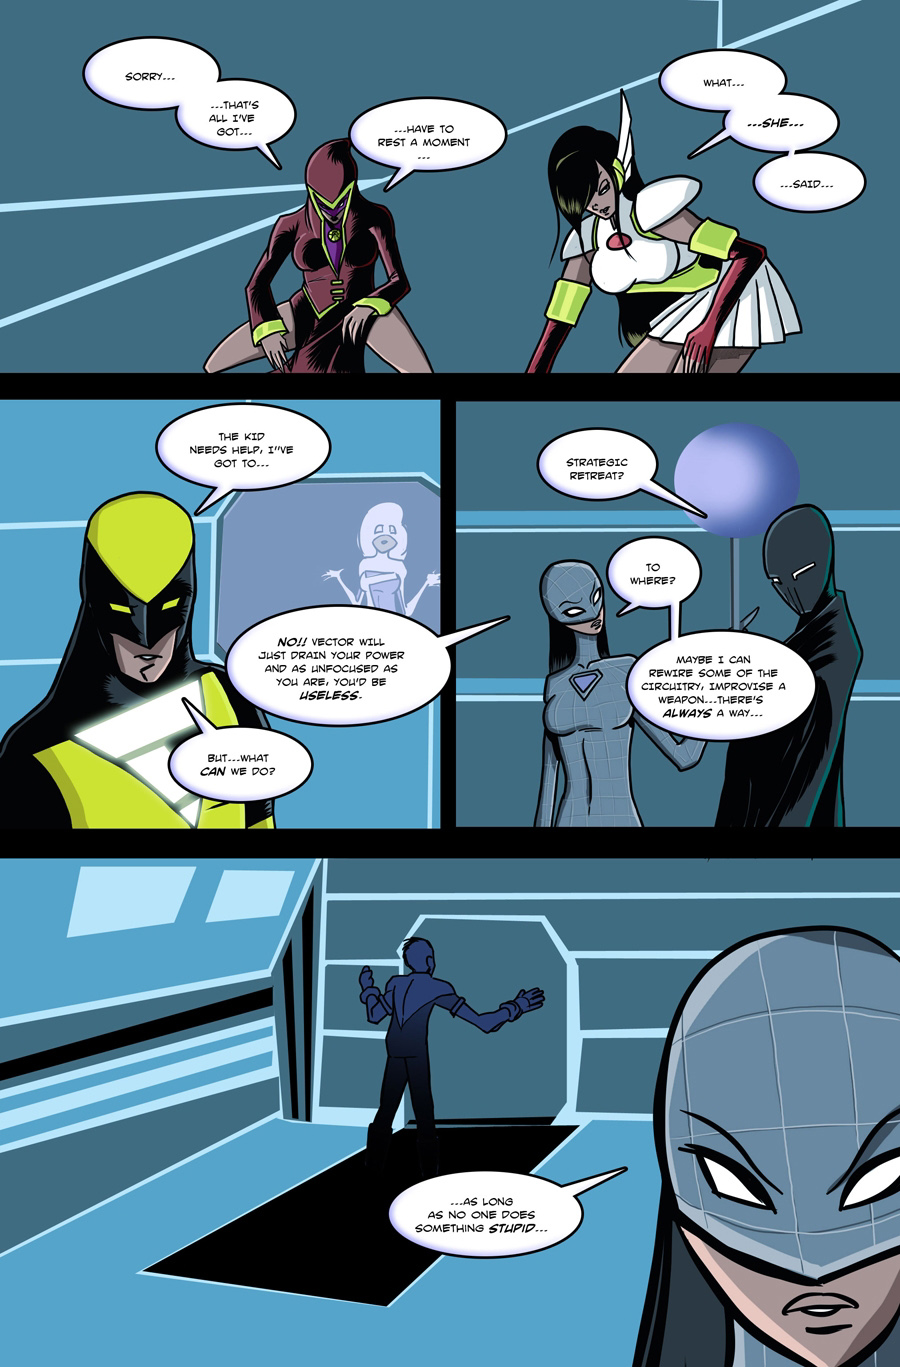 Crossoverkill - Chapter 5, Page 28